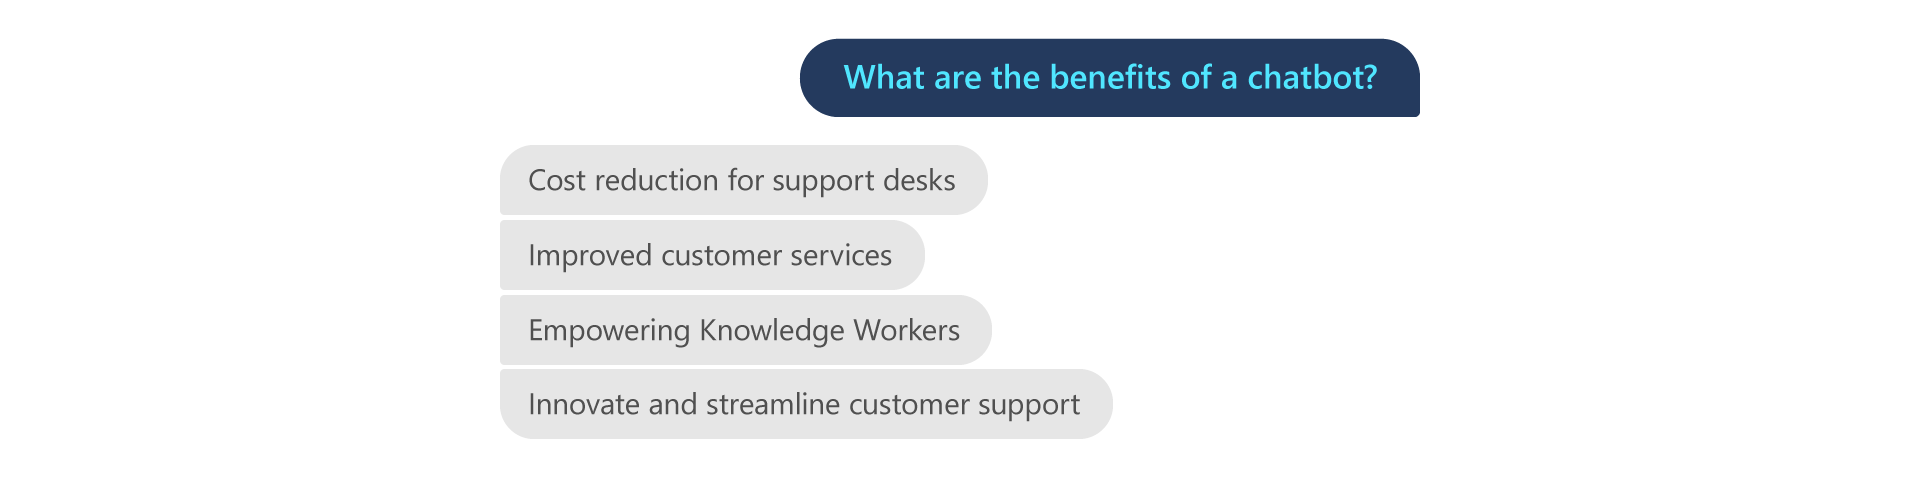 Benefits of a chatbot